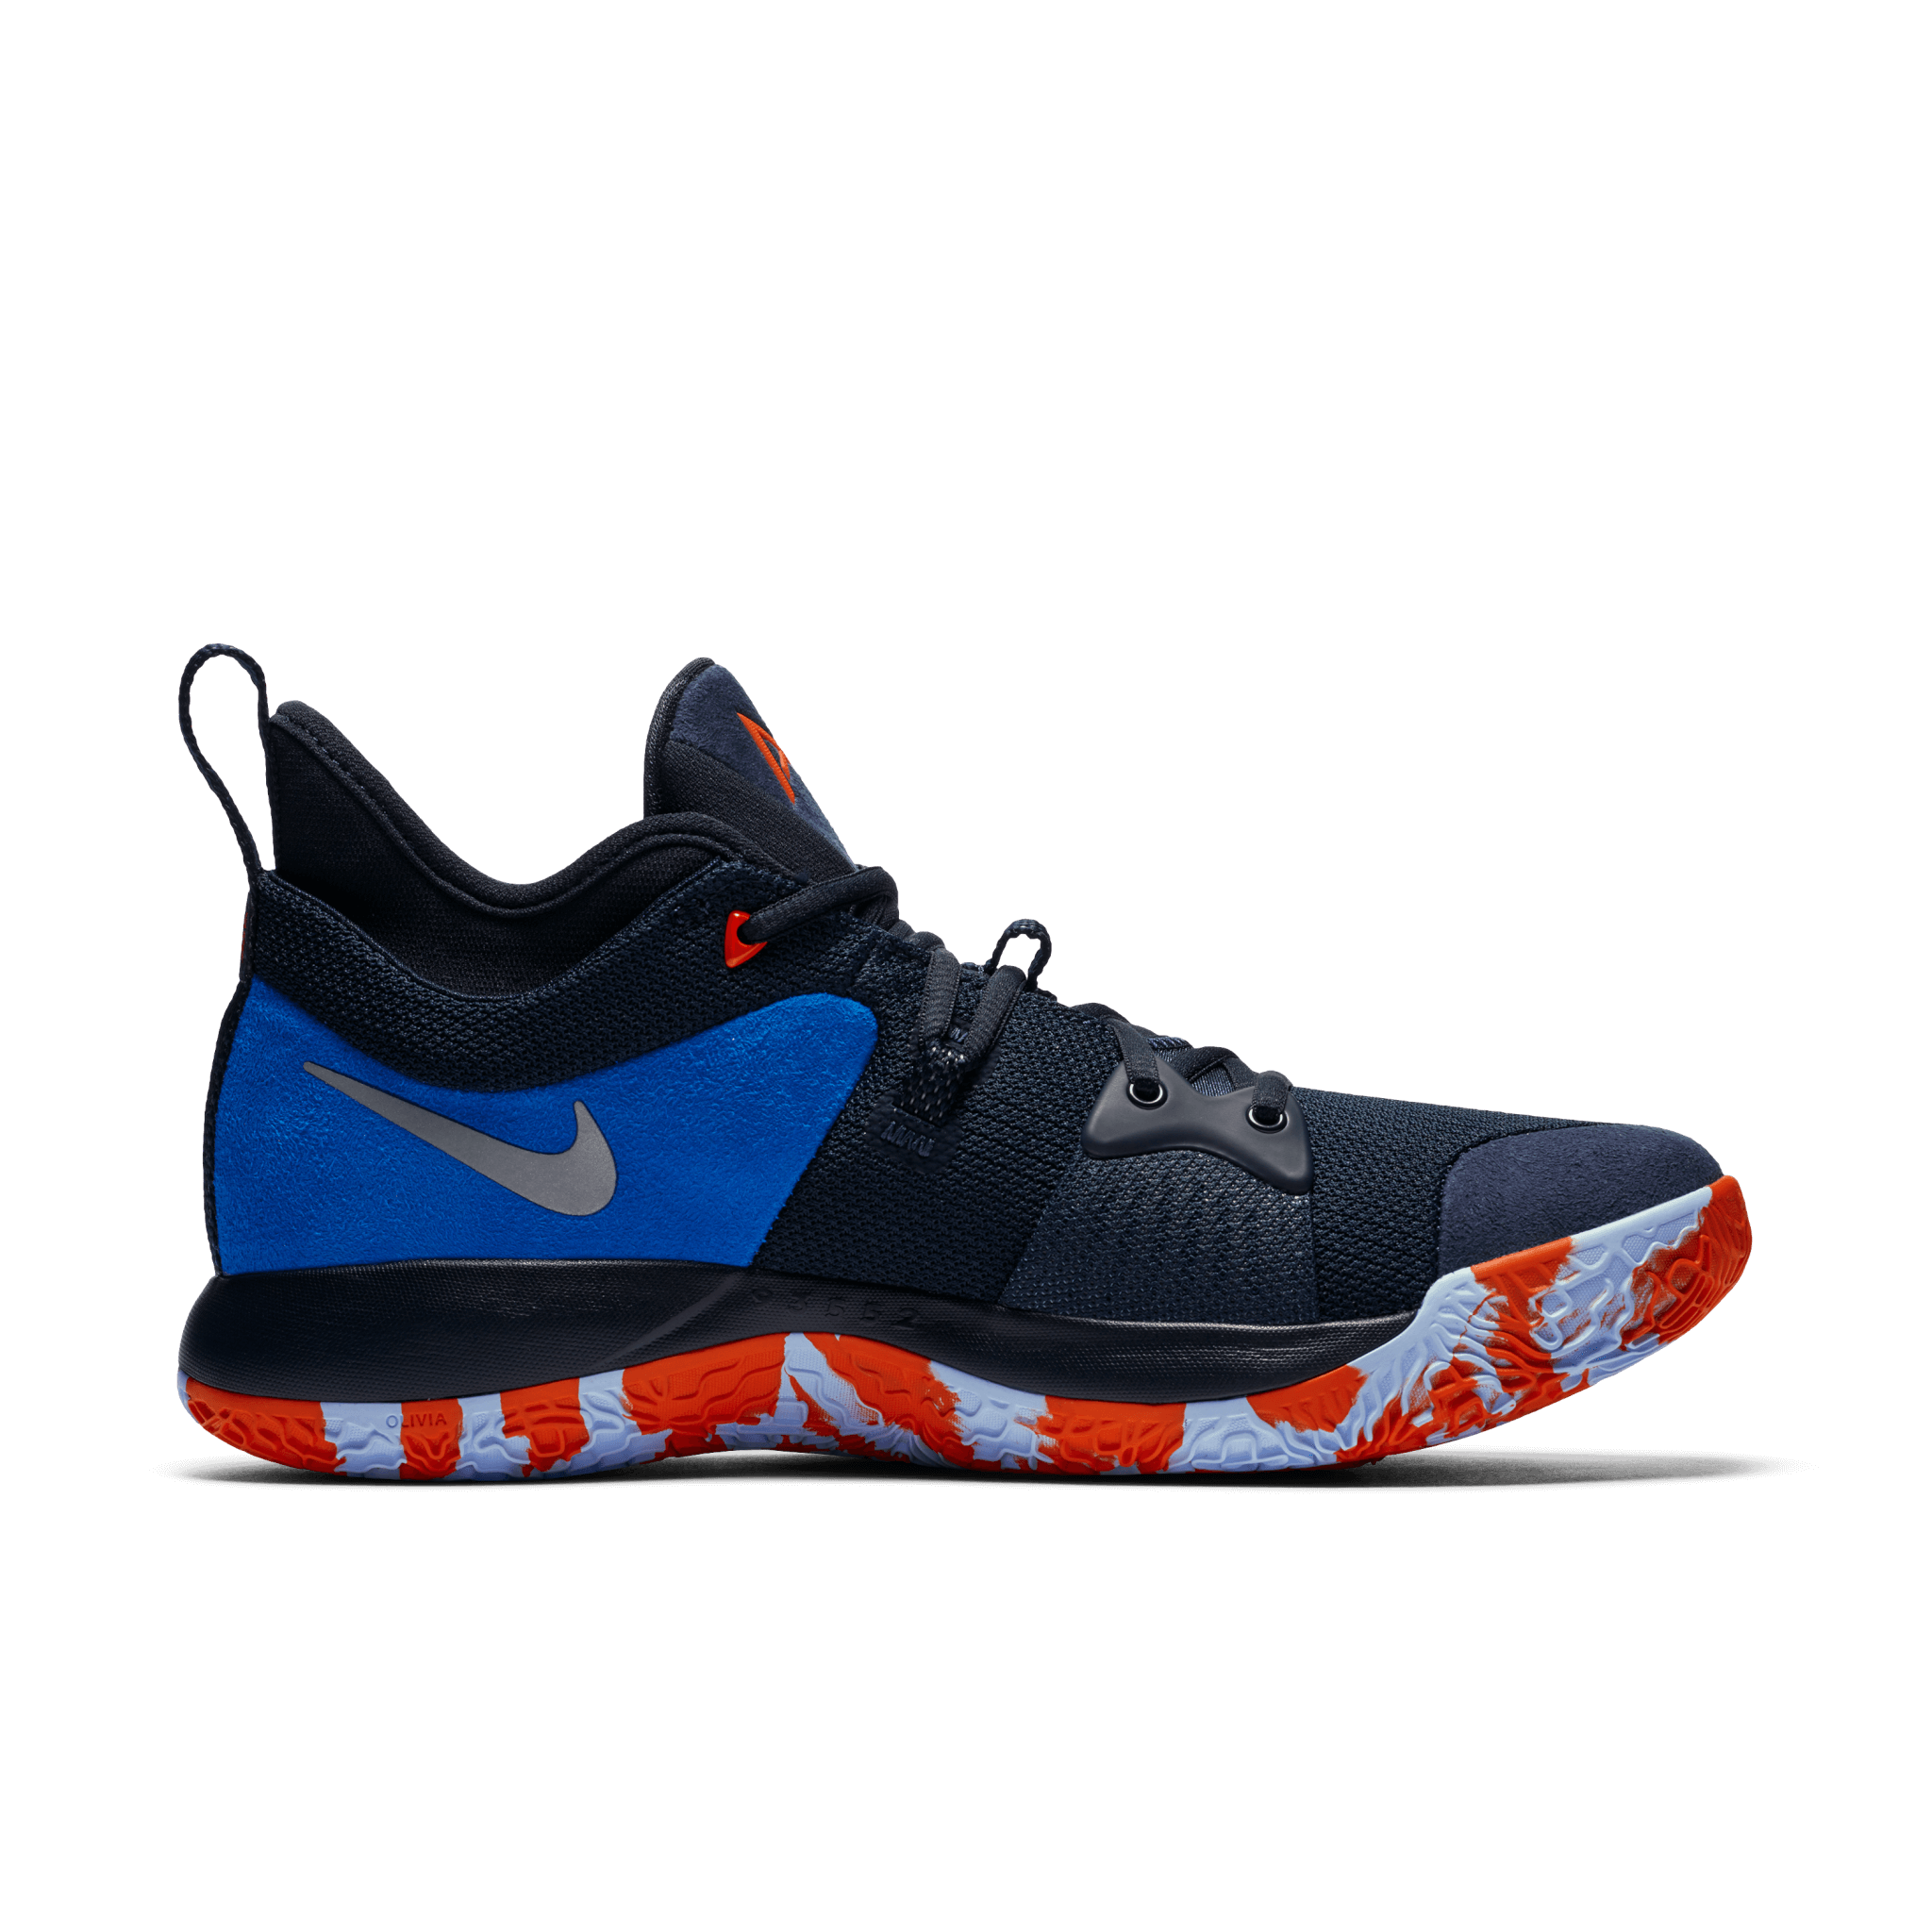 077c242d9c2 Nike PG 2 Performance Review